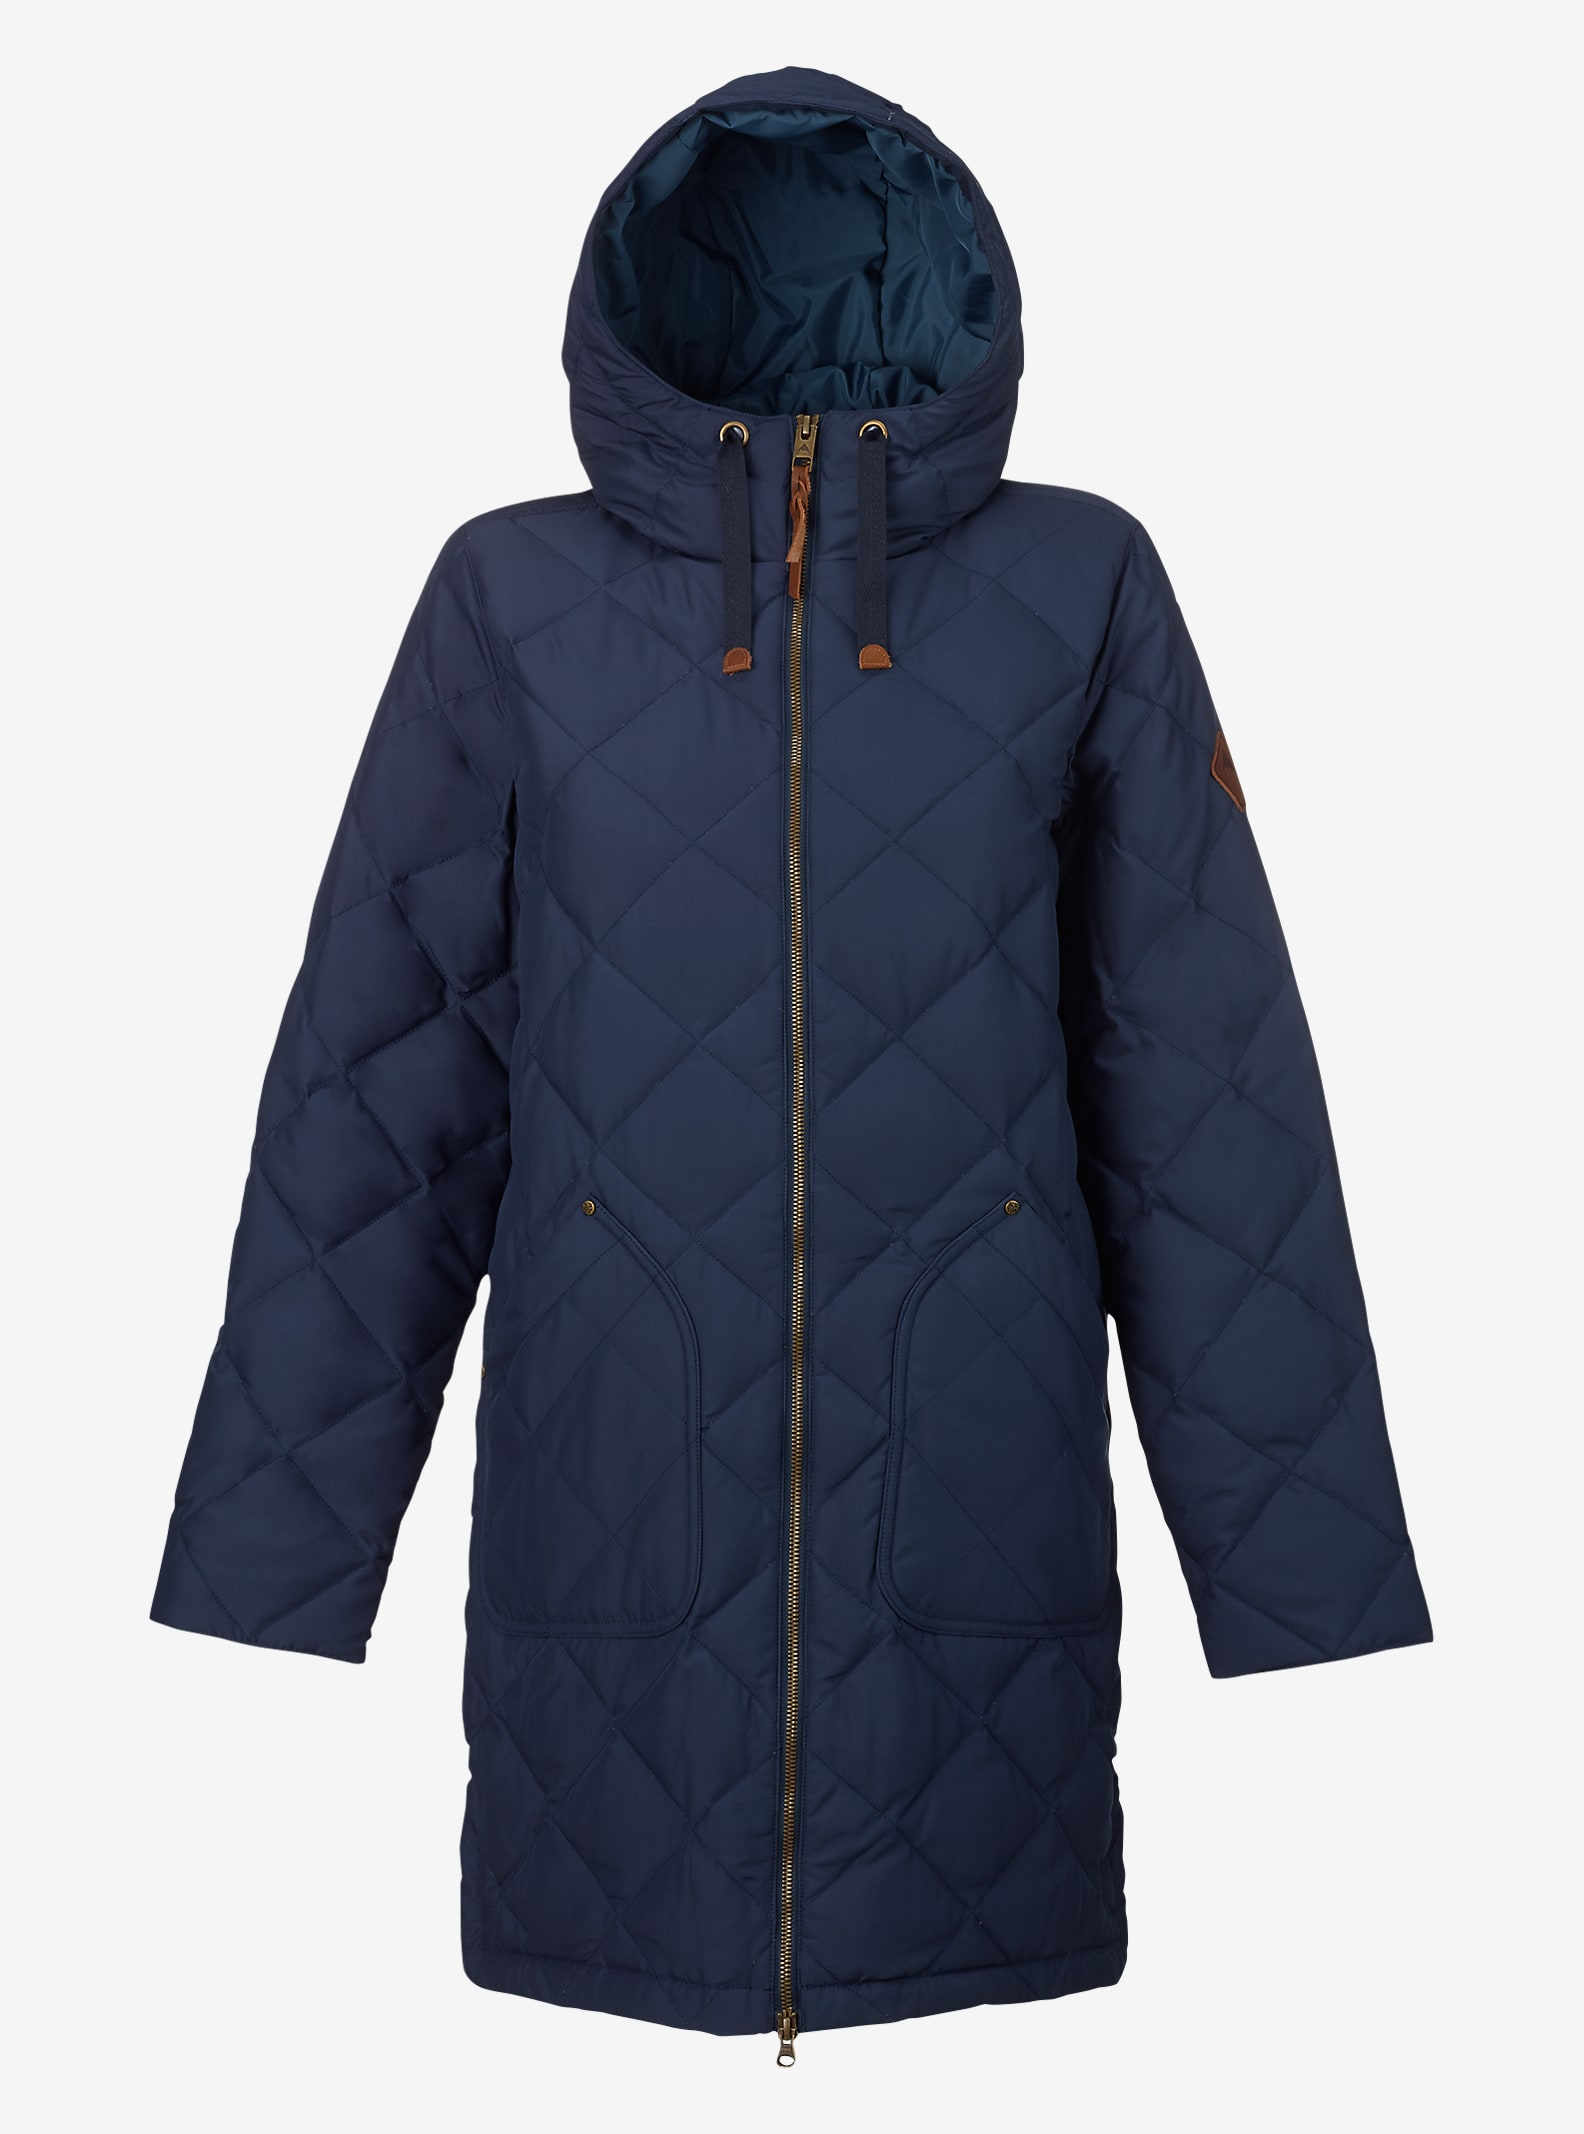 Burton Bixby Long Down Jacket shown in Mood Indigo